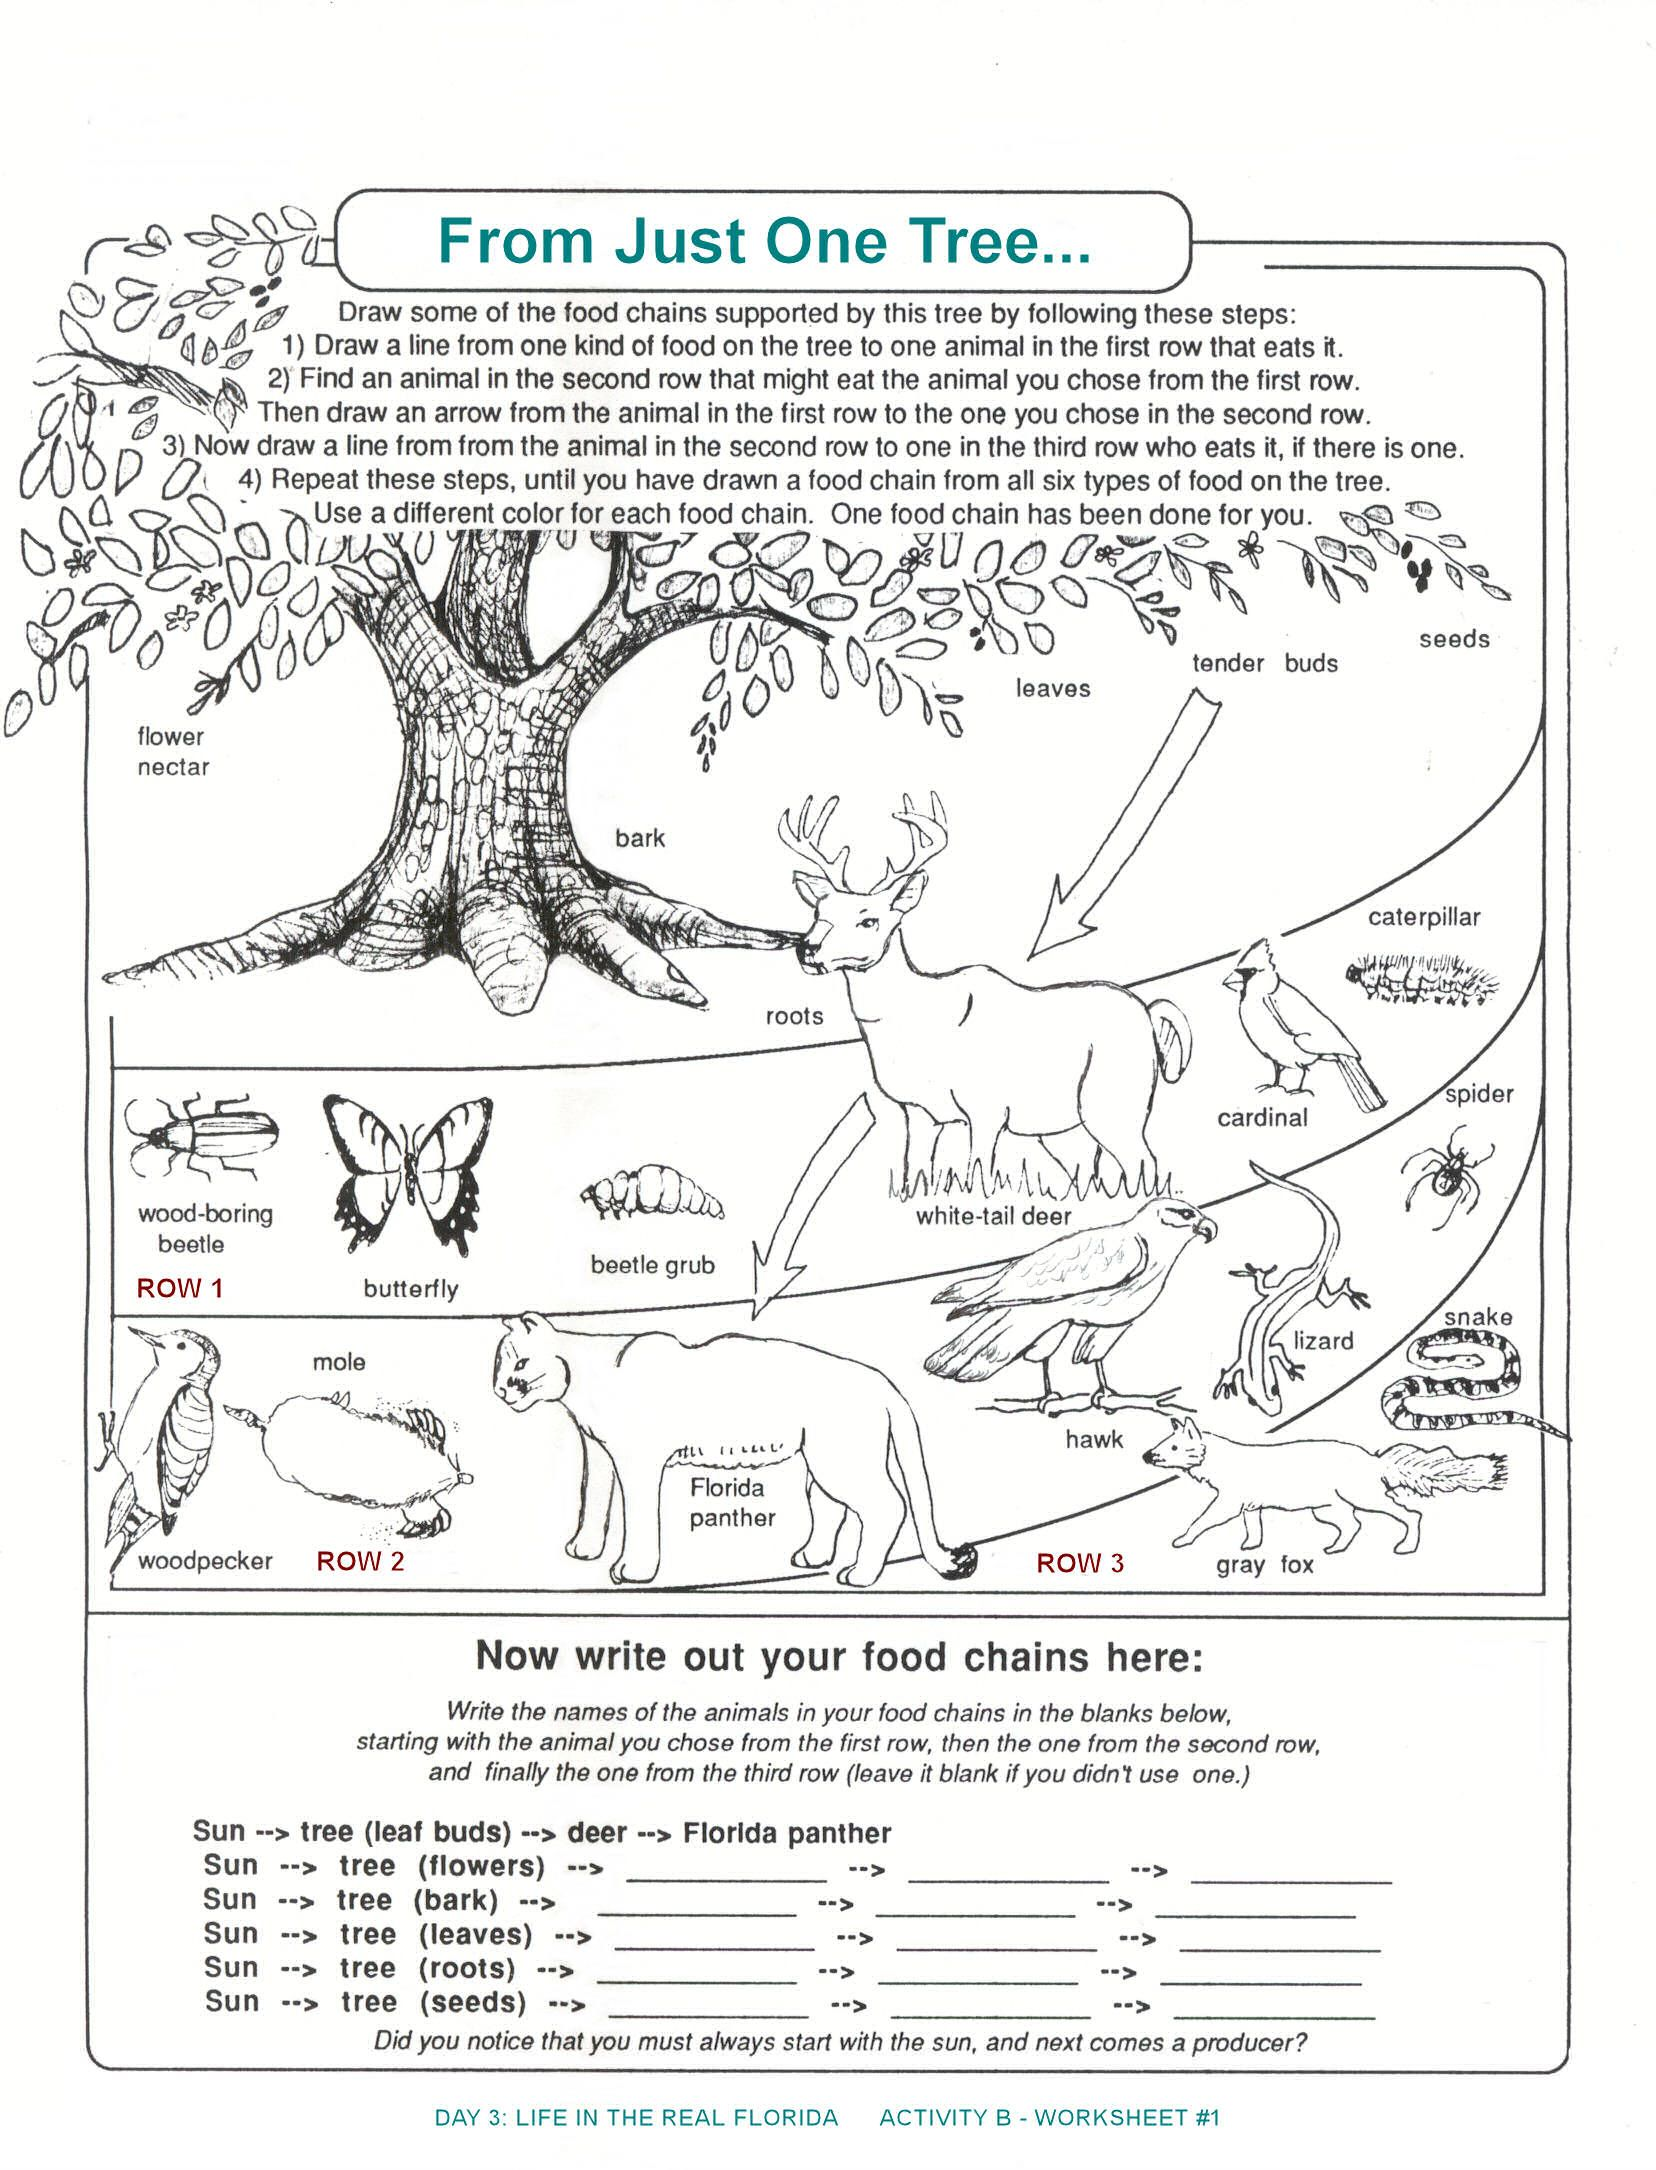 decomposers worksheets for kids – Producers Consumers and Decomposers Worksheet